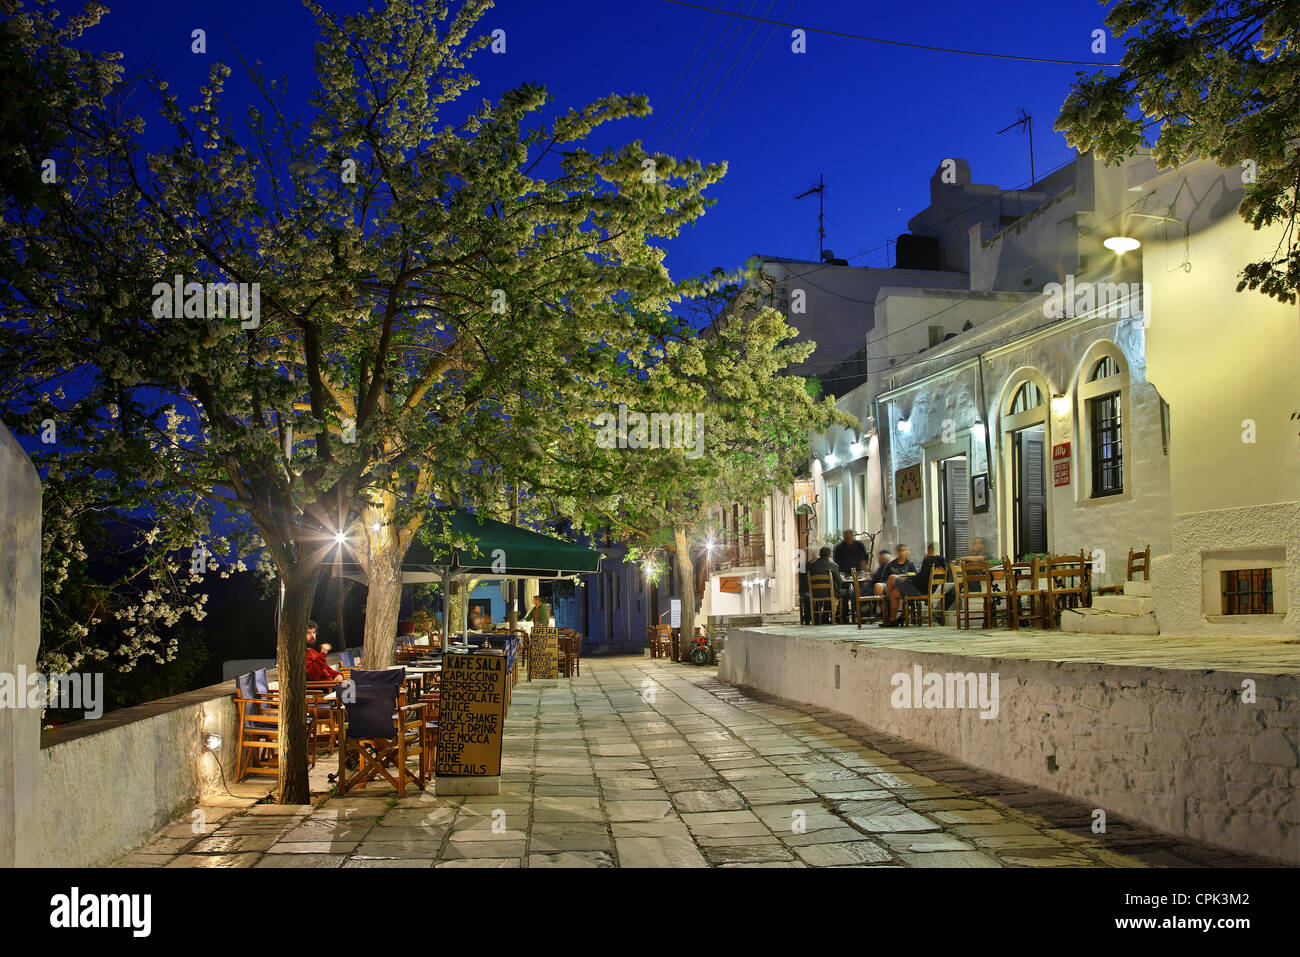 The central alley of Apiranthos village at night. Naxos island, Cyclades, Greece - Stock Image